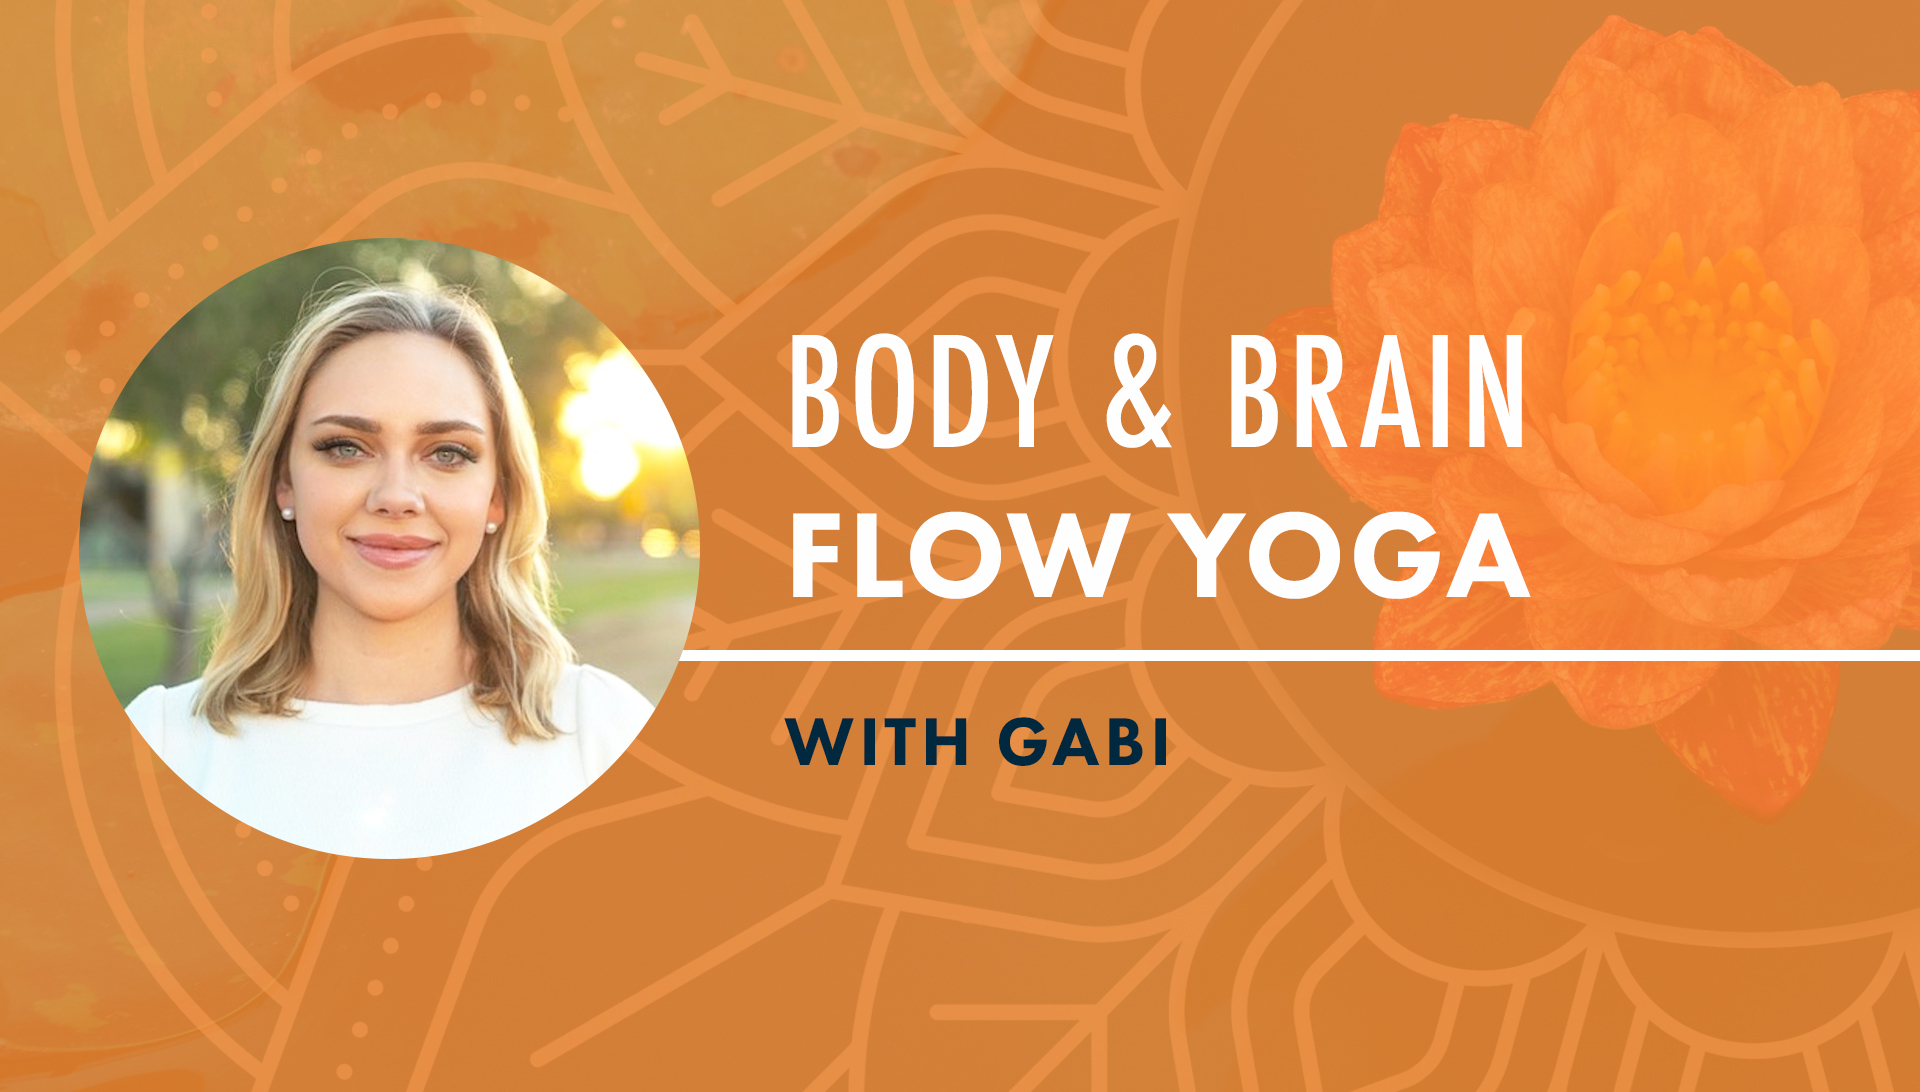 Body & Brain Flow Yoga with Gabi